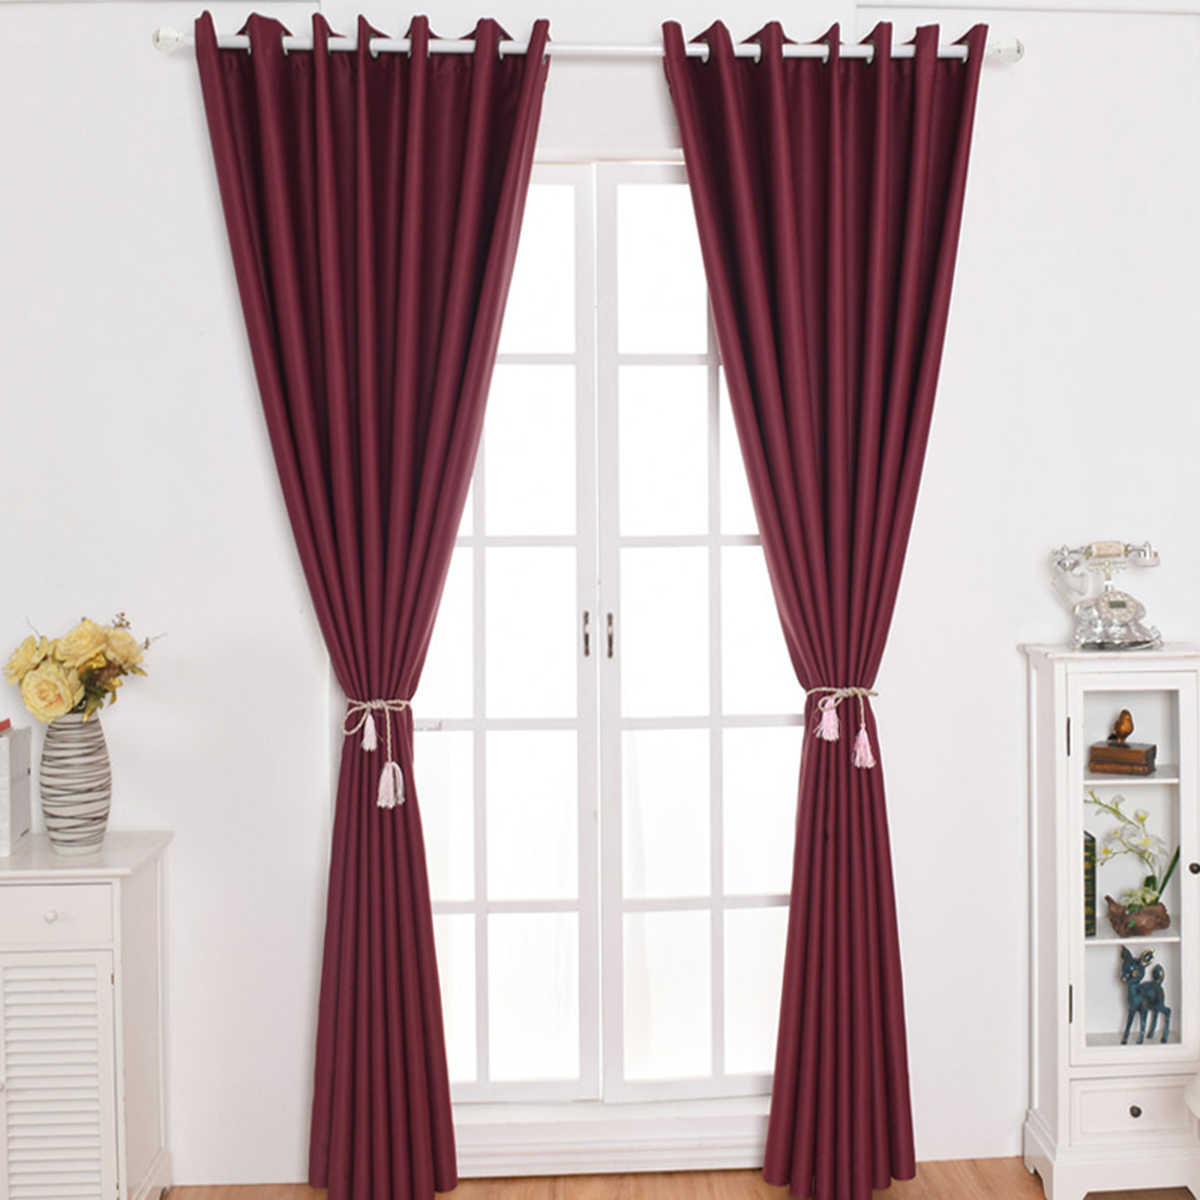 1pc Ultra Sleep Well Blackout Curtains Room Darkening Textured Grommet Window Curtains for Living Room Size 100*250 (Wine Red)